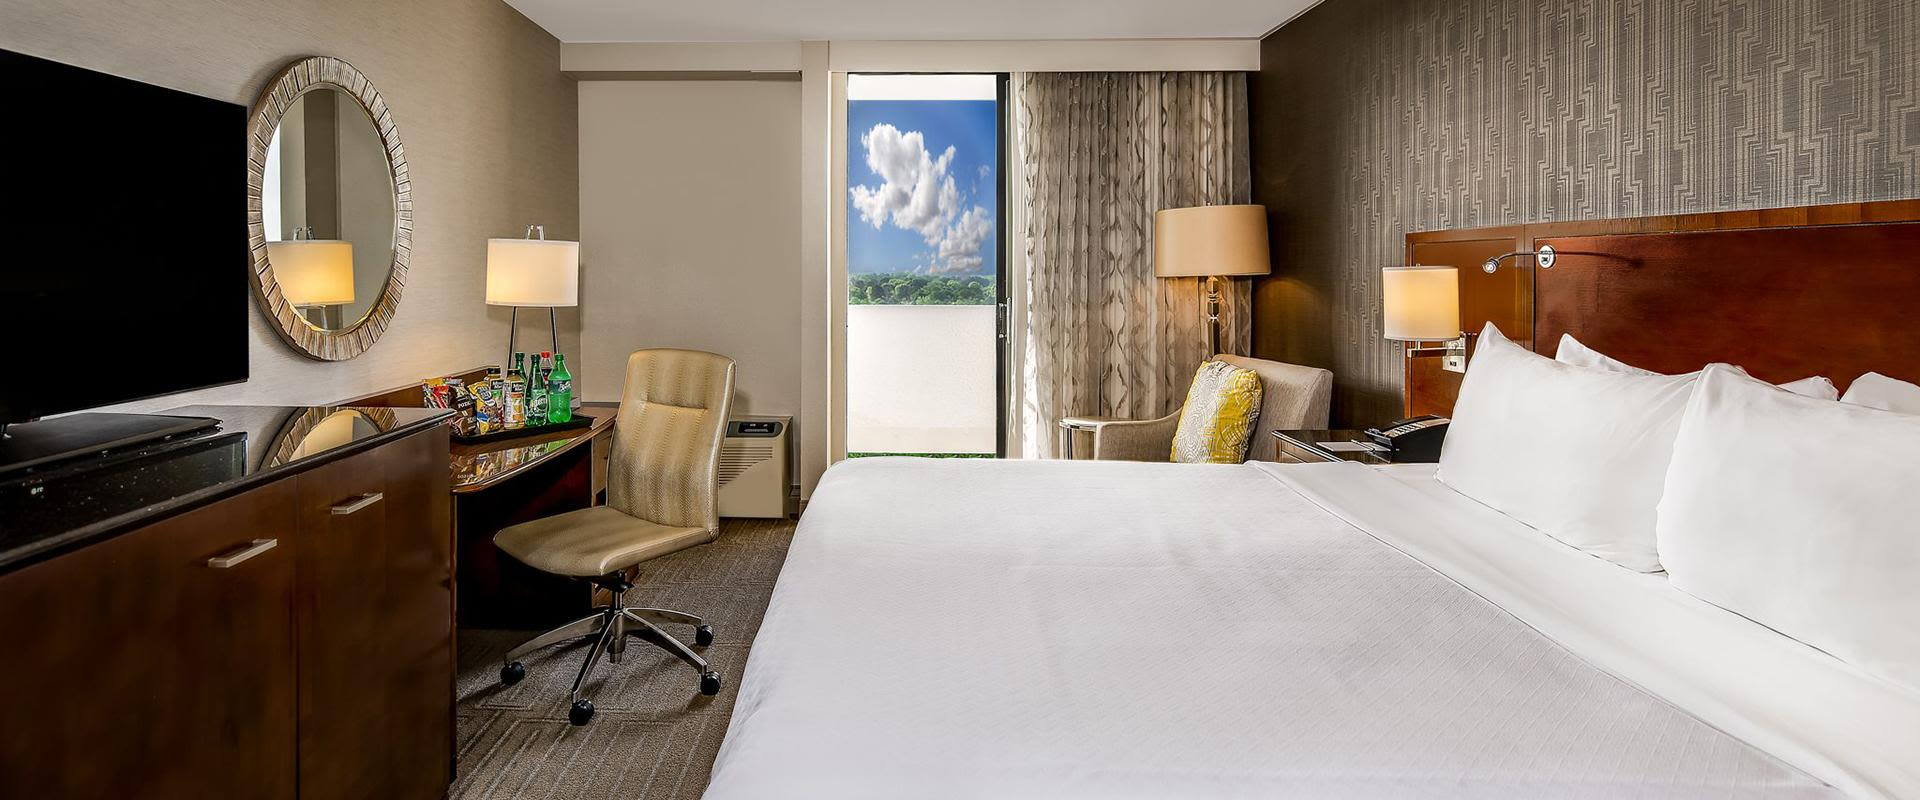 Charlotte Hotel Guest Room King Bed